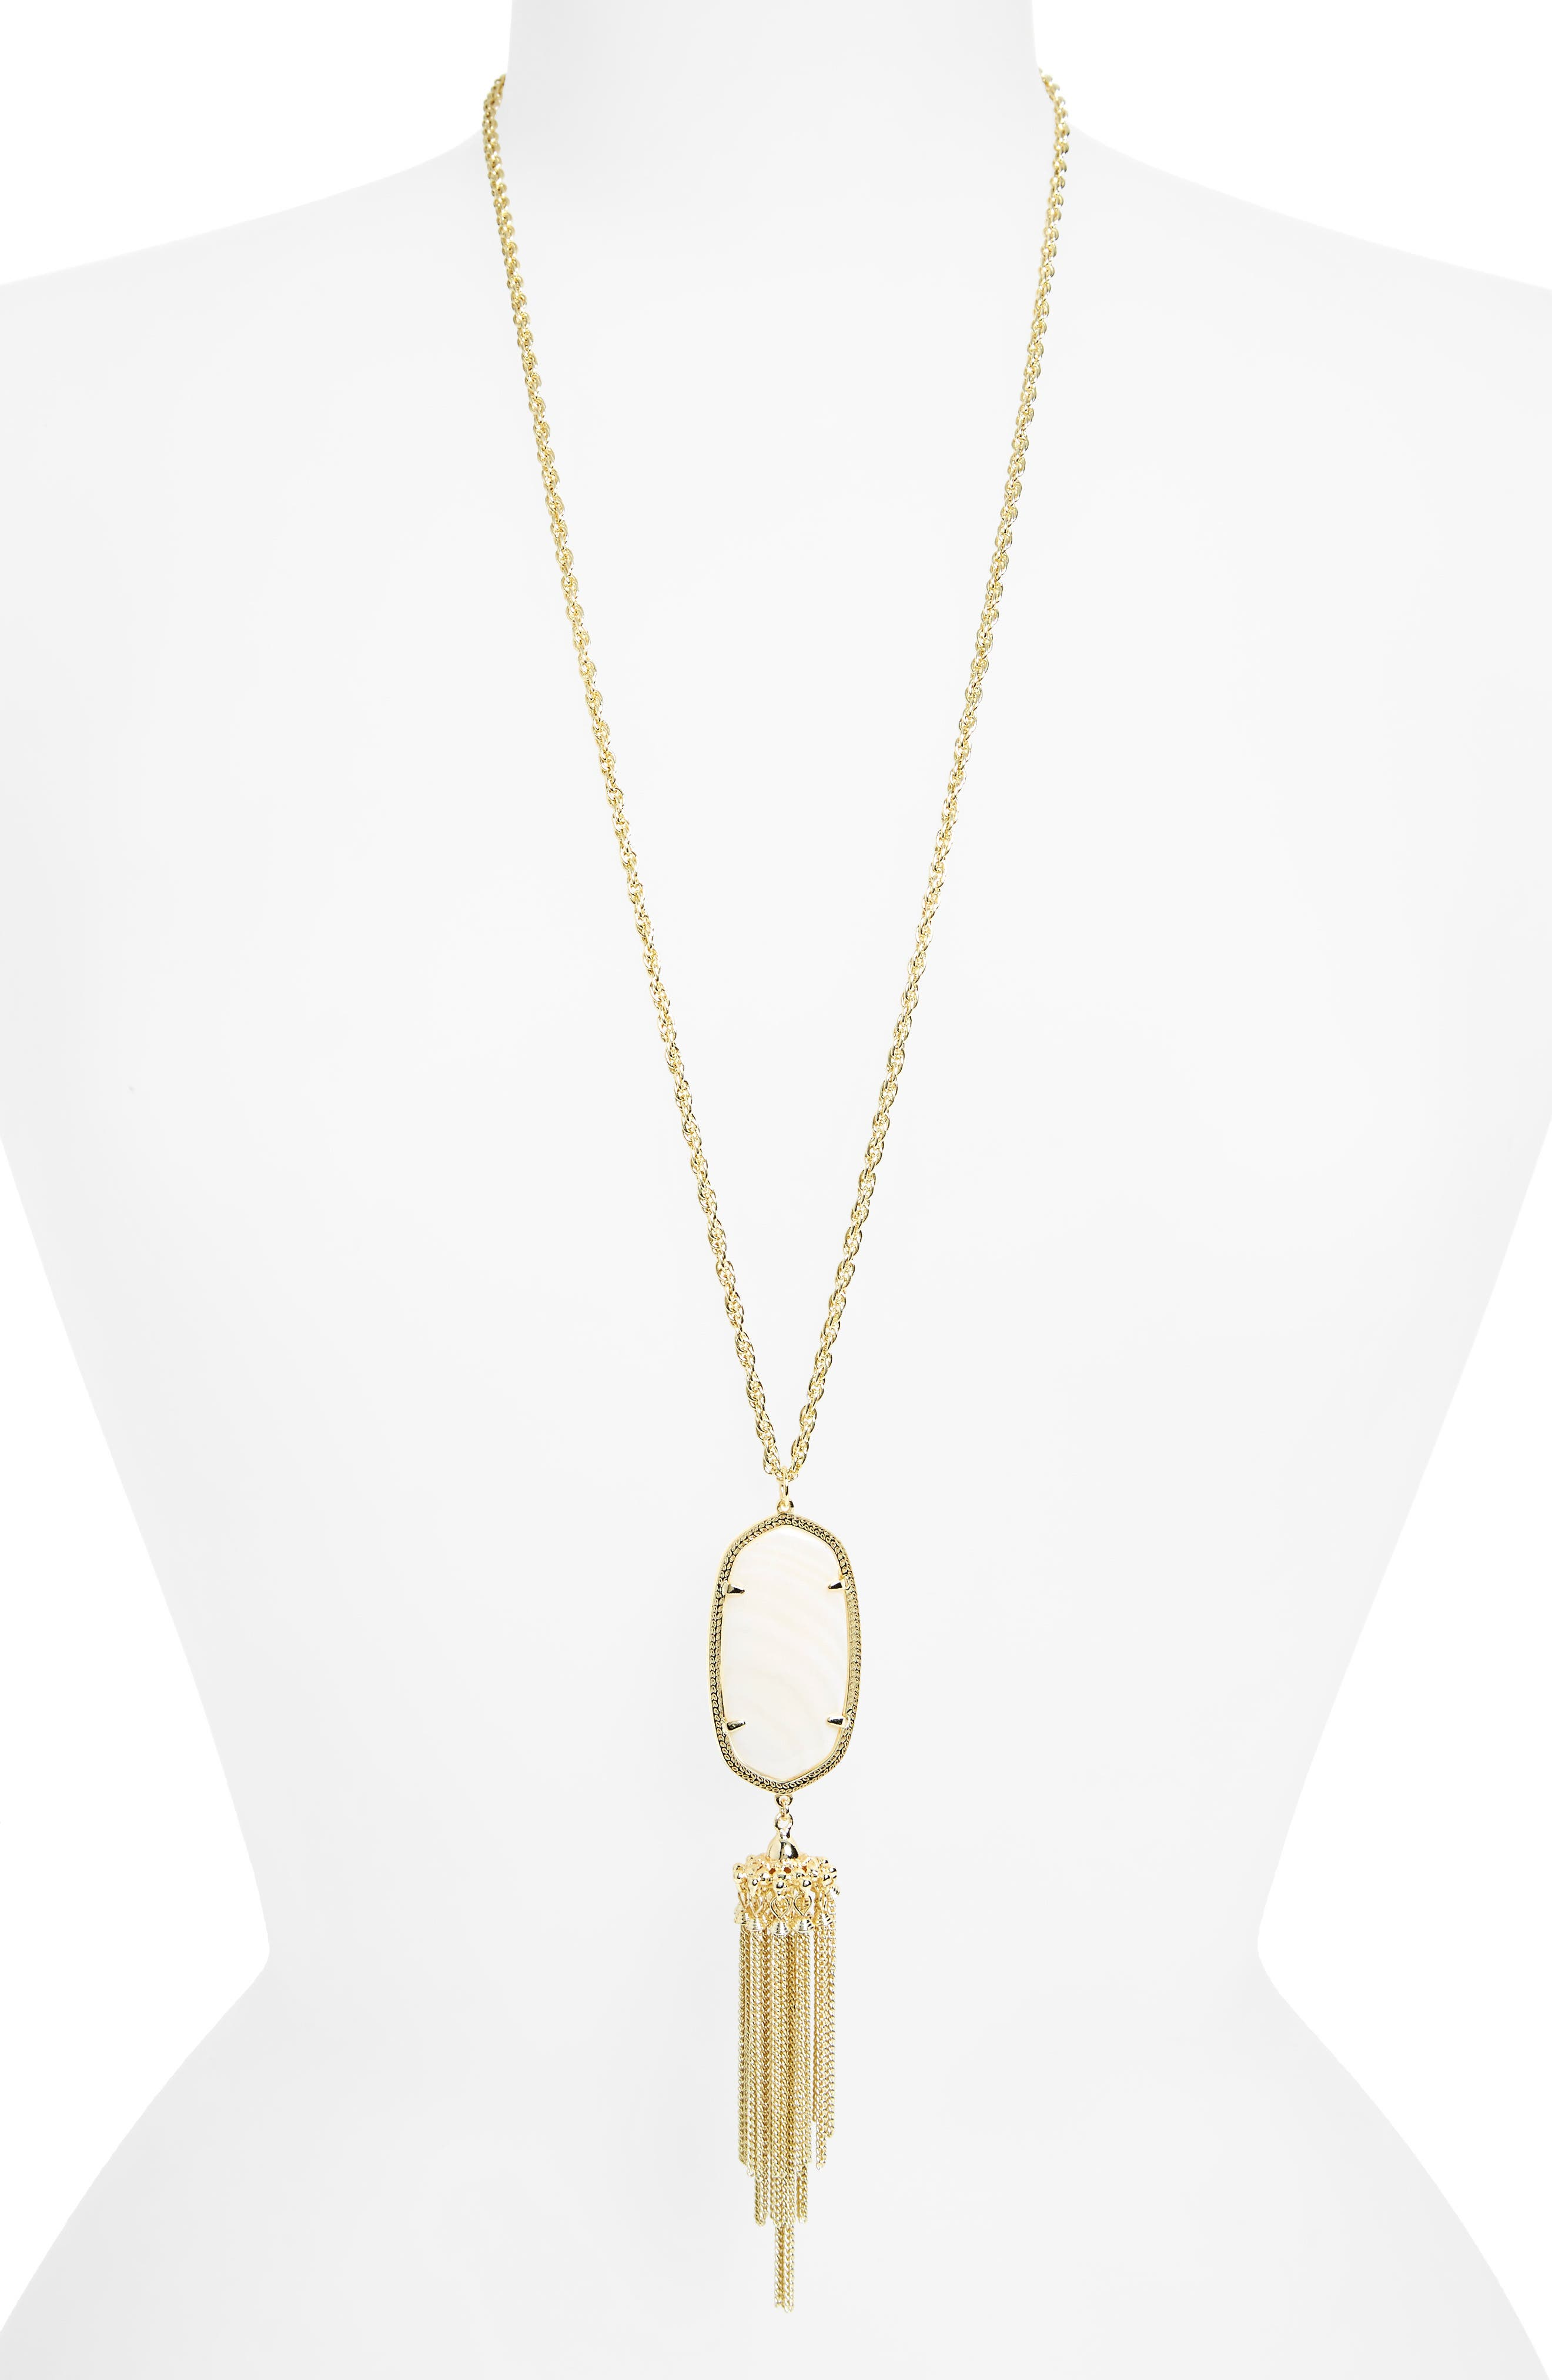 Rayne Stone Tassel Pendant Necklace,                             Main thumbnail 1, color,                             White Mother Of Pearl/ Gold